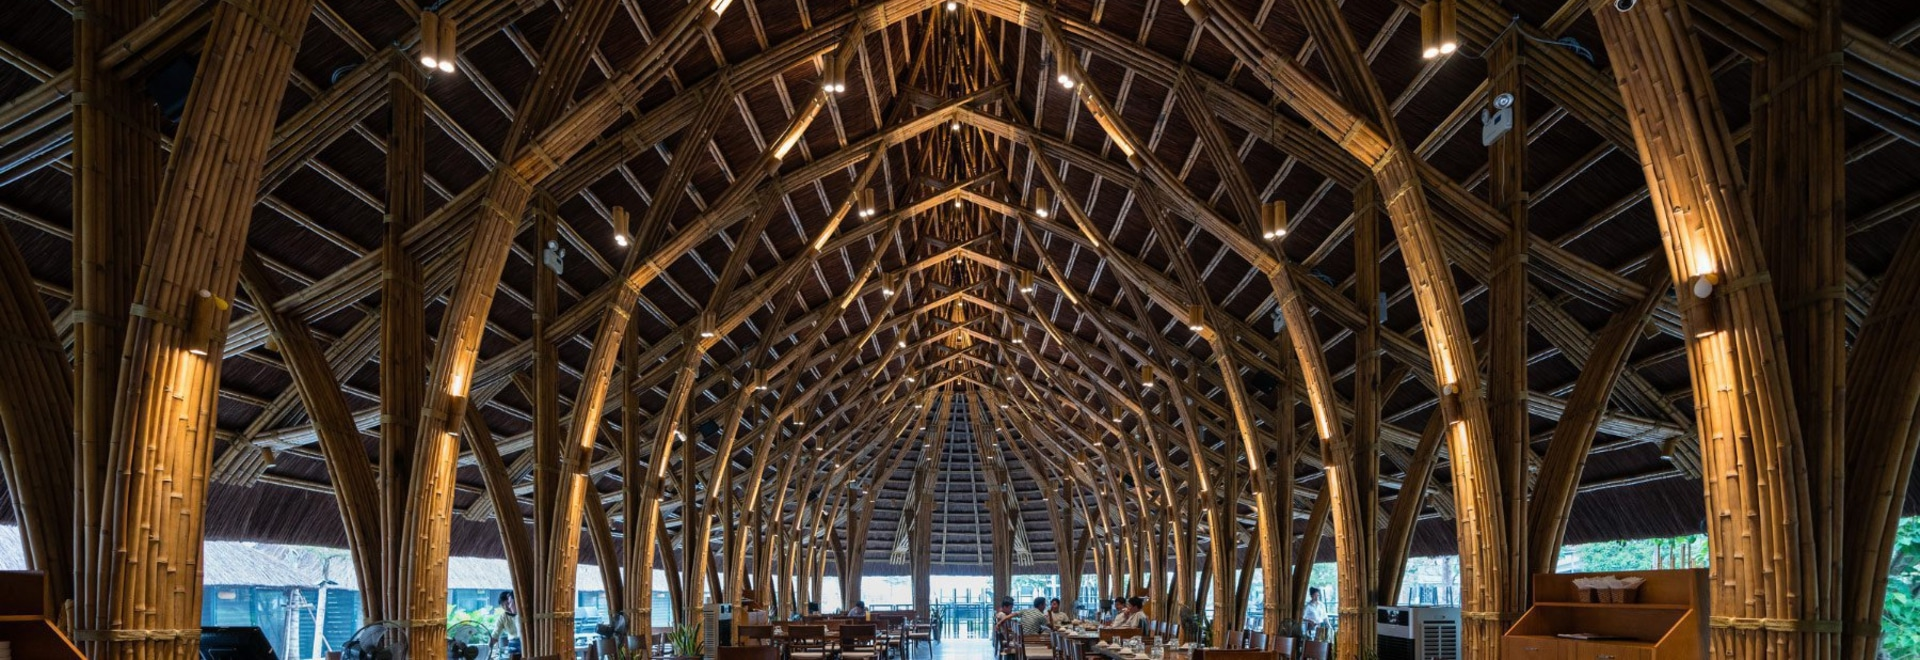 prefabricated bamboo components comprise this restaurant in vietnam